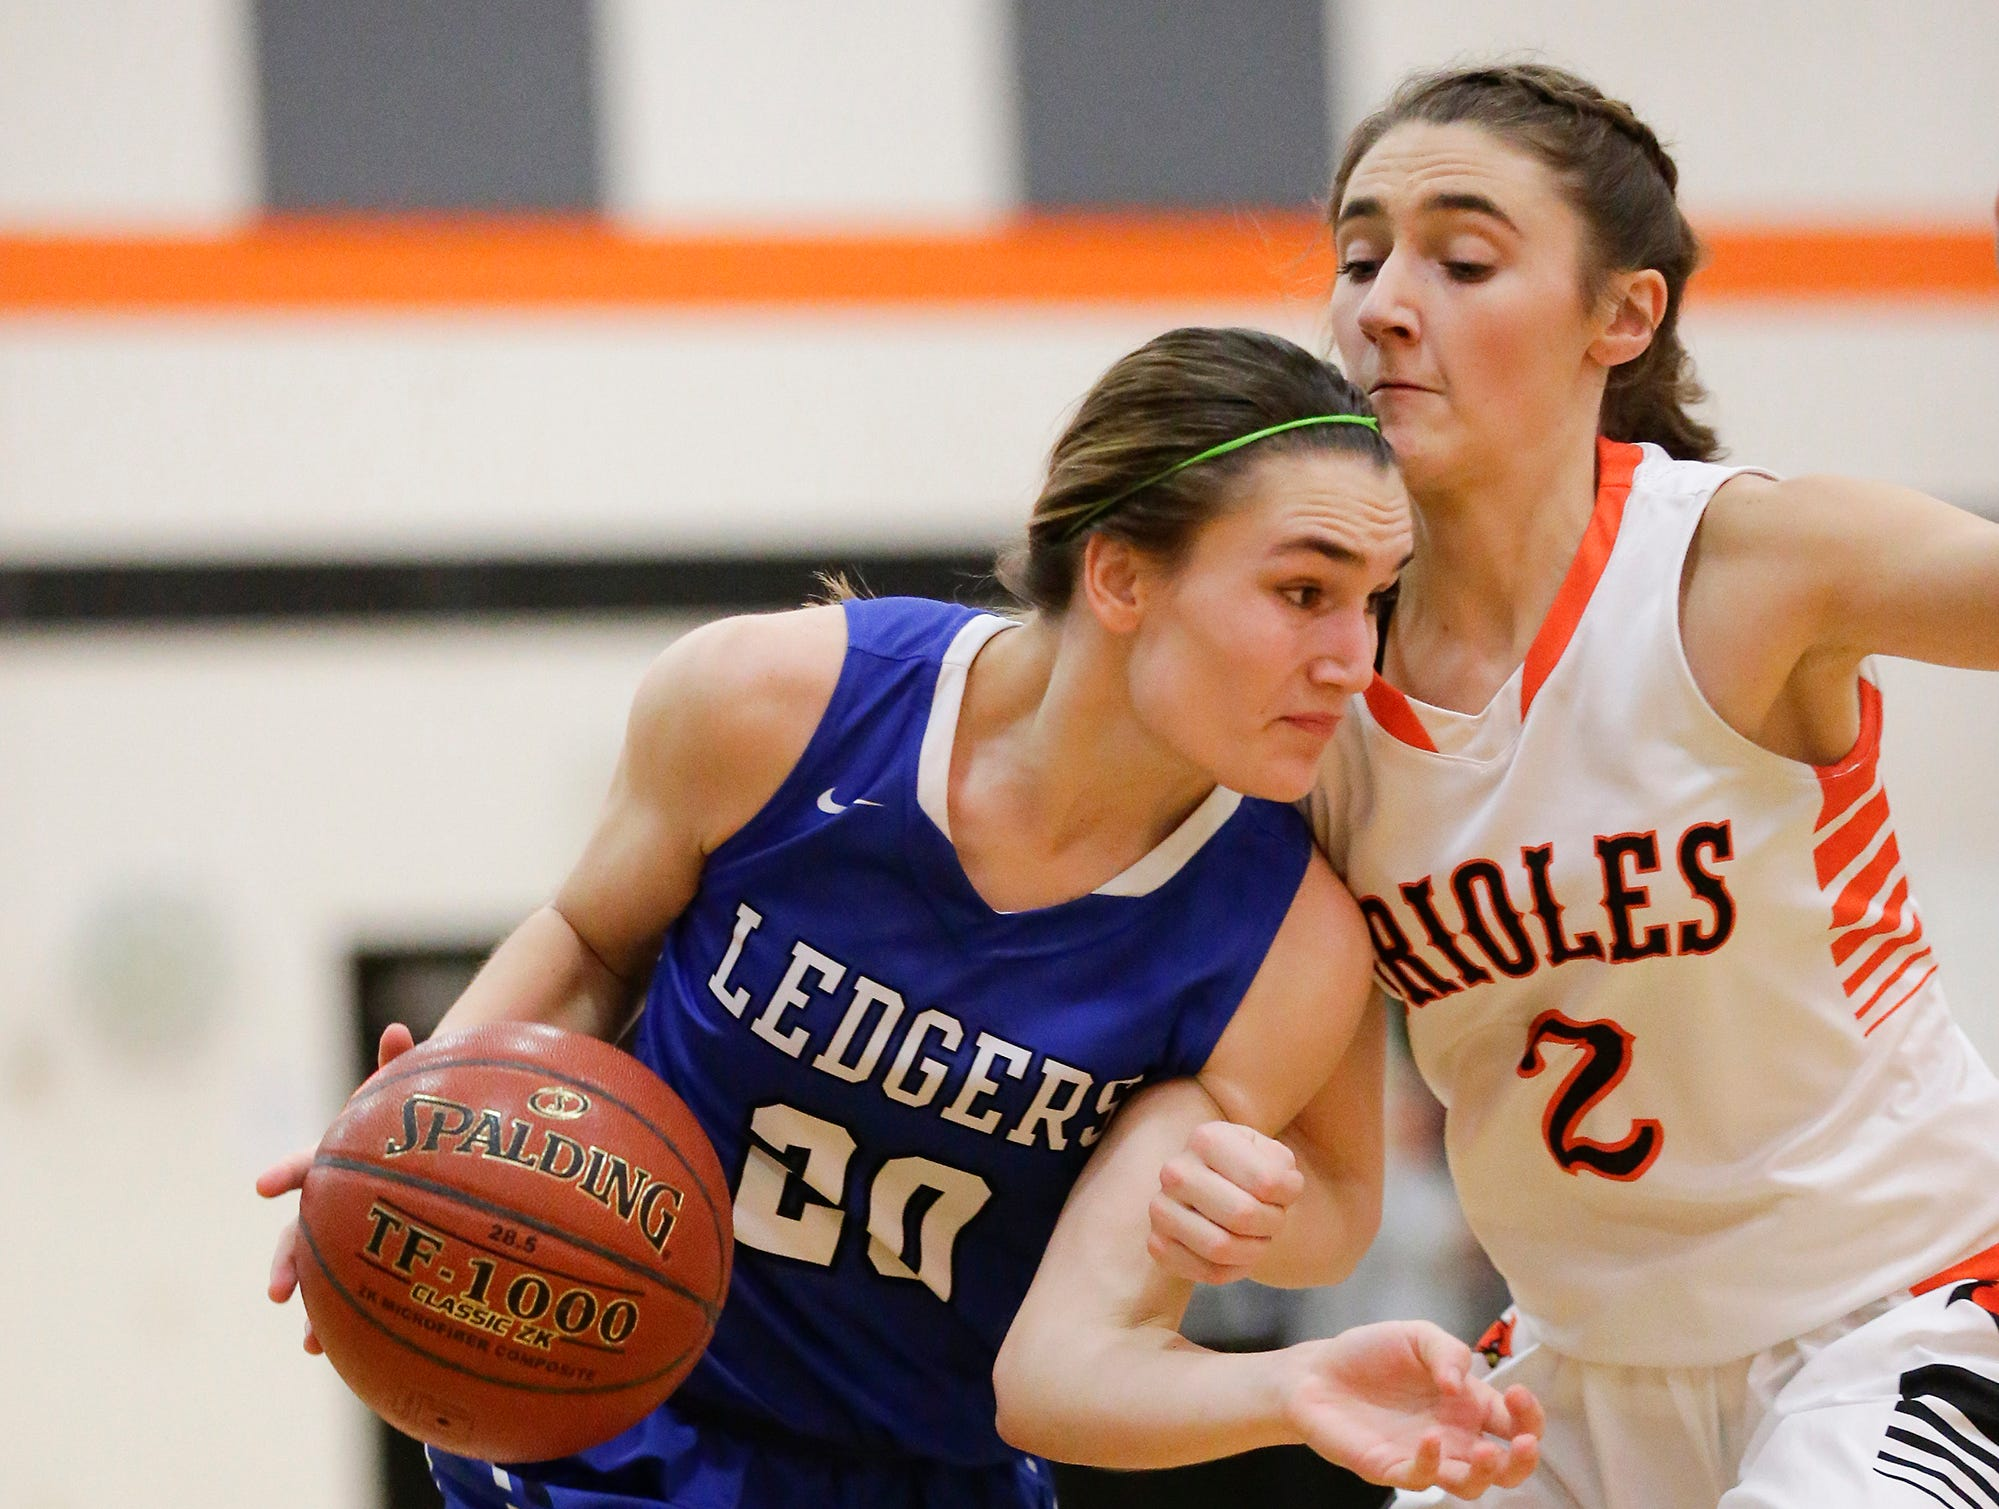 St. Mary's Springs Academy girls basketball's Jenna Gilgenbach makes her way past North Fond du Lac High School's Ashley Now during their game Friday, January 4, 2019 in North Fond du lac. Doug Raflik/USA TODAY NETWORK-Wisconsin